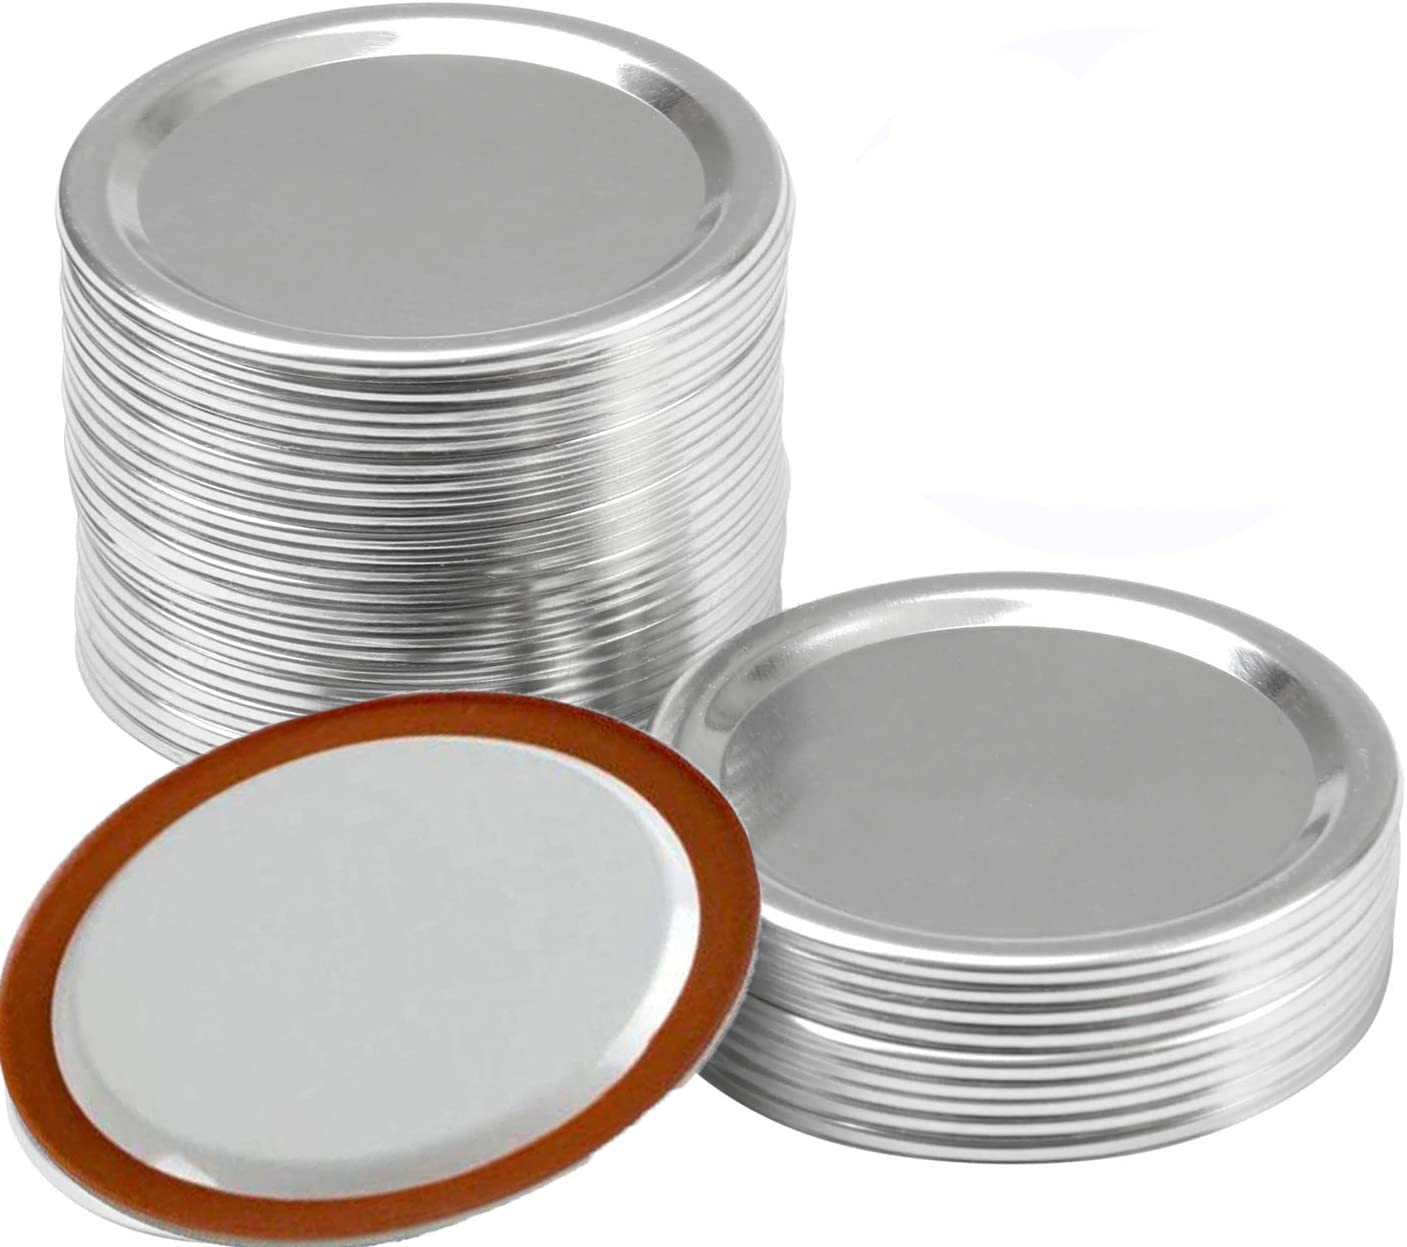 Wide Mouth Canning Lids, Lids for Mason Jar Canning Lids (24 wide lids+ 24 wide bands)